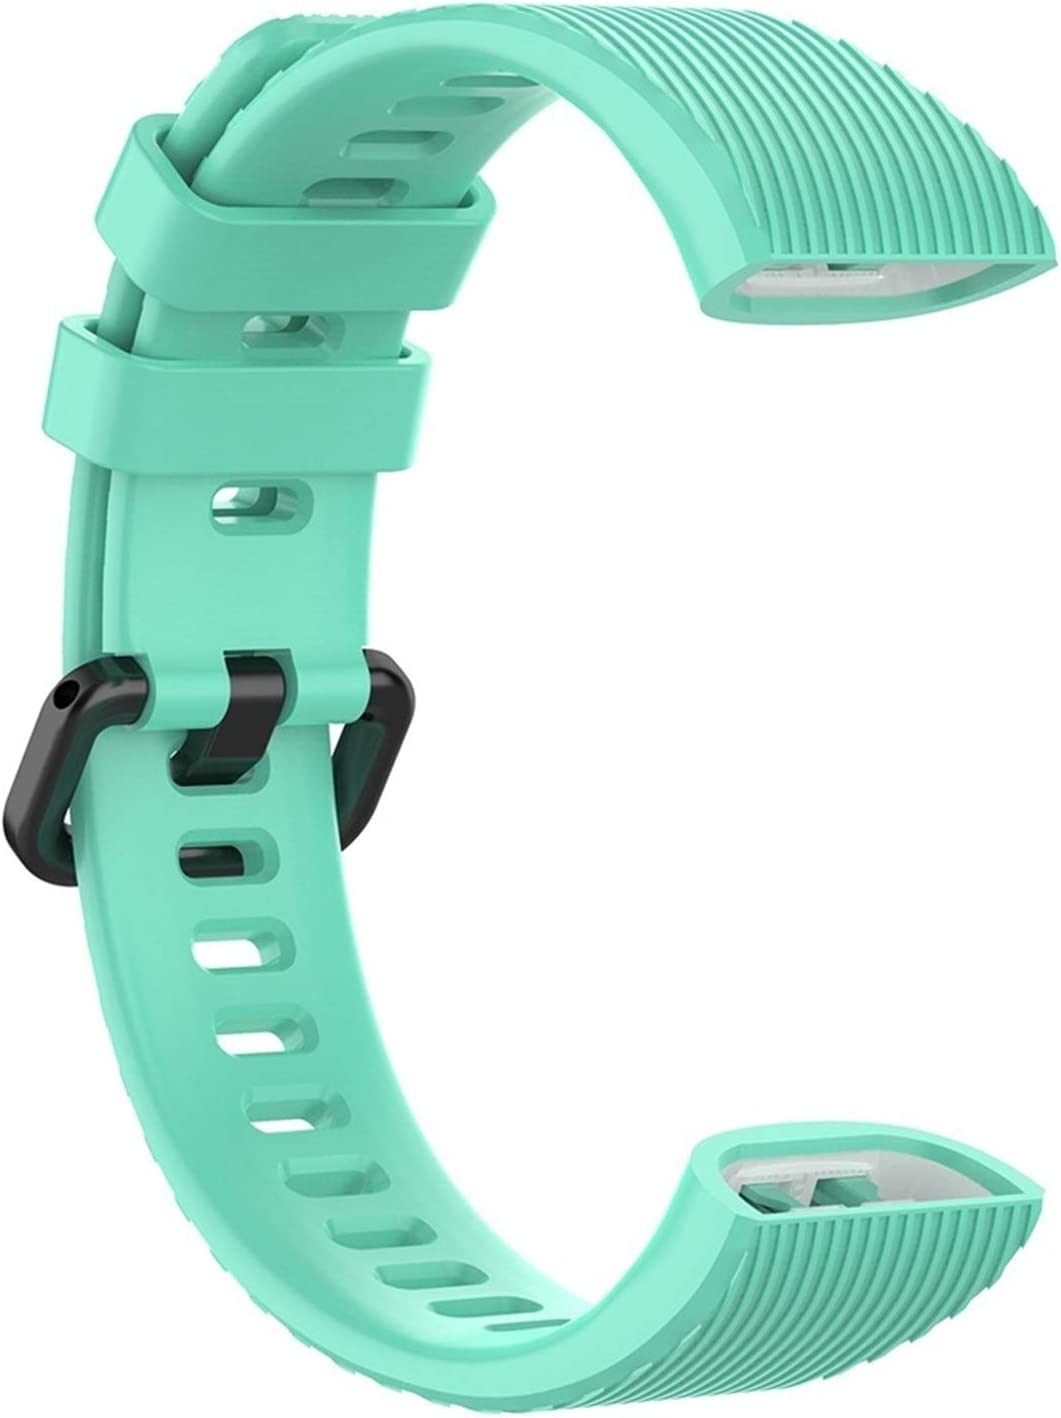 ZWMFAC 1Pc Soft Silicone price Band for Wrist Pro 4 Max 75% OFF 3 Huawei Stra